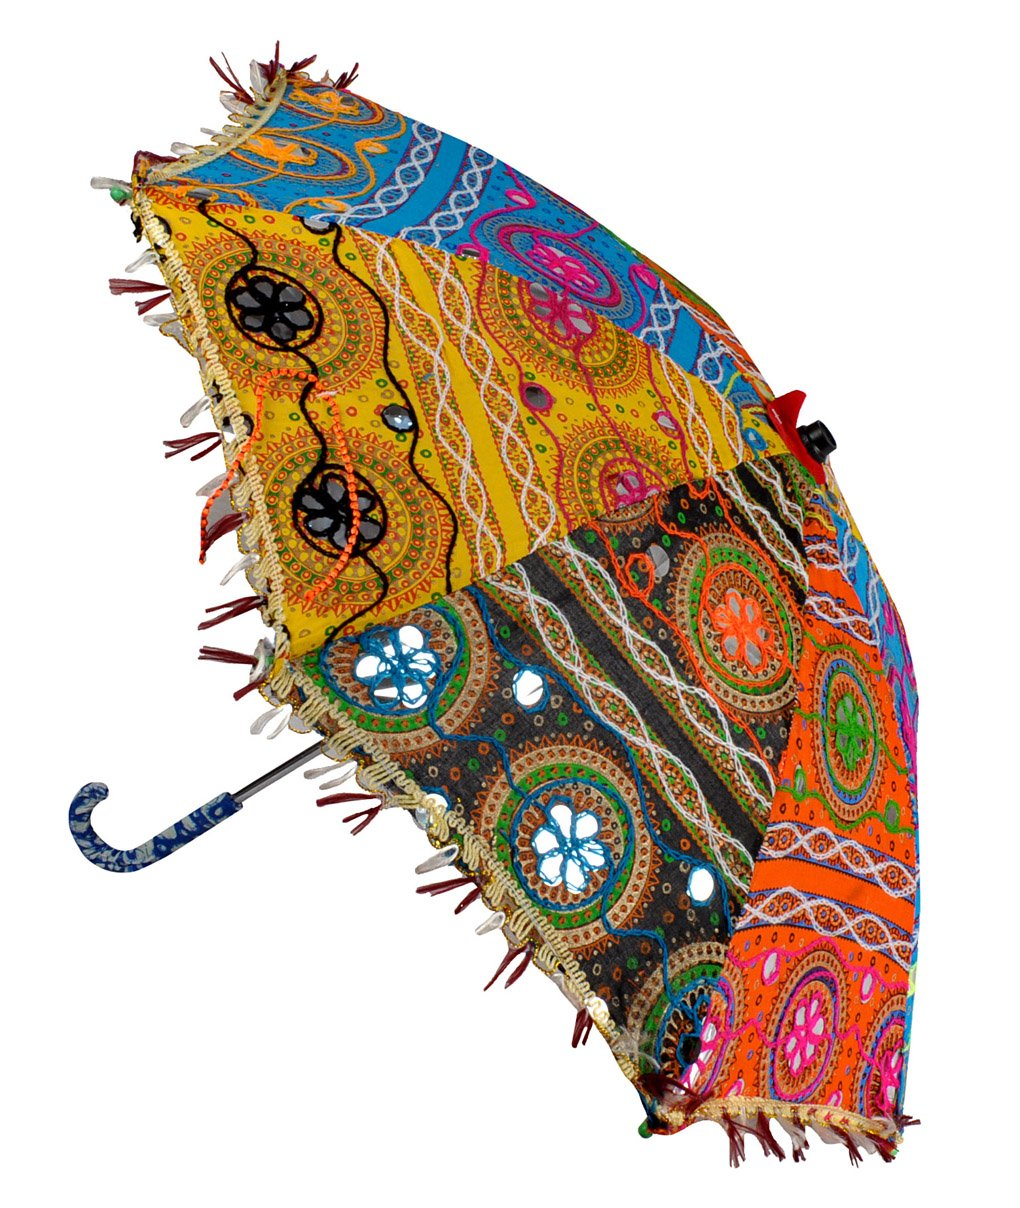 Lal Haveli Handmade Embroidery Work Design Indian Umbrella 21 x 26 Inch